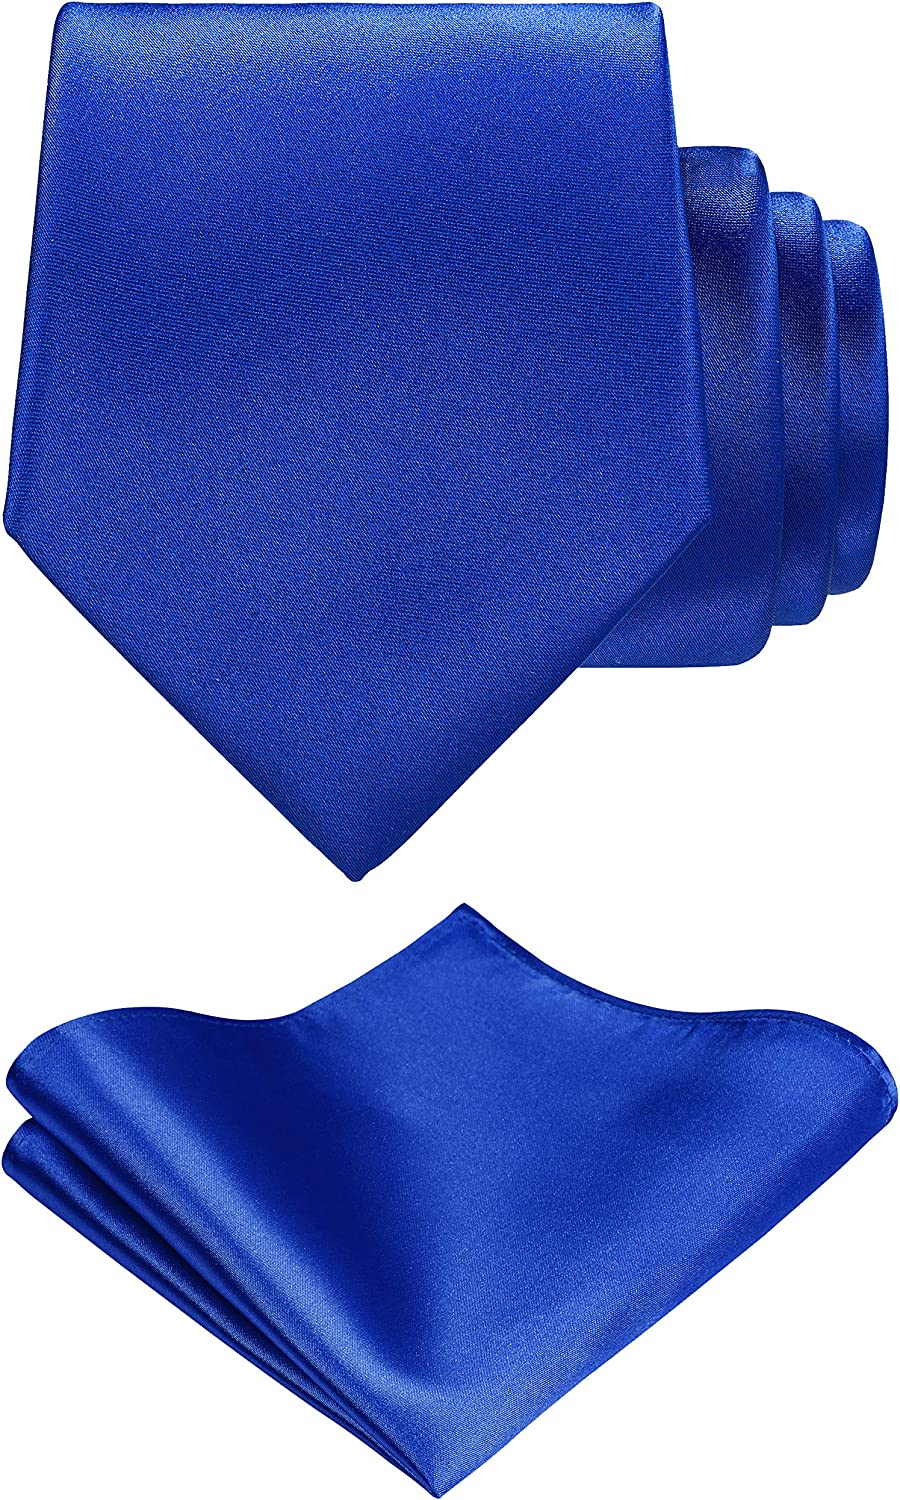 TIE G Solid Satin Color Formal Necktie and Pocket Square Sets in Gift Box